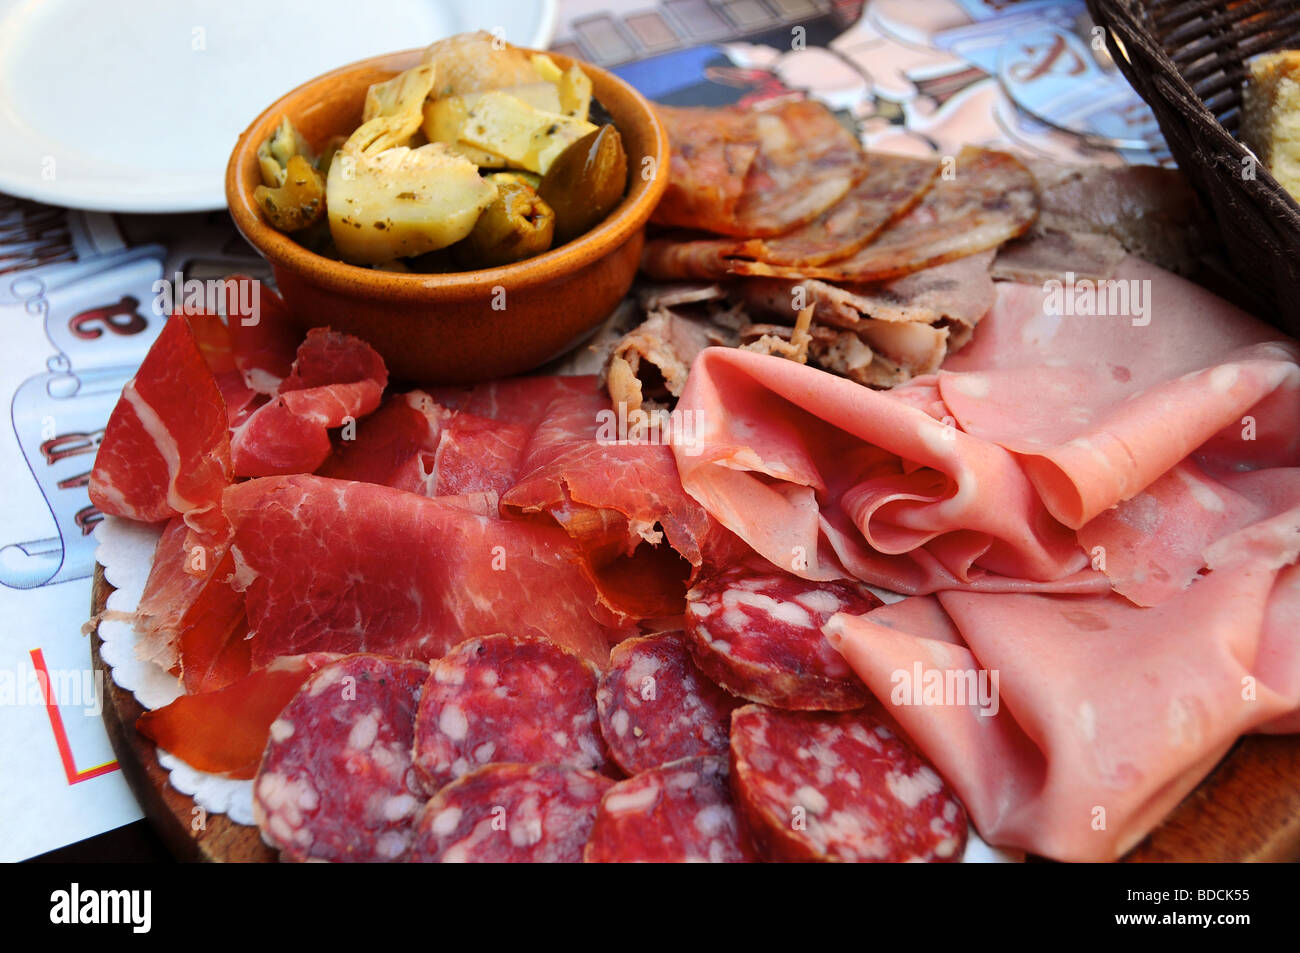 Platter of local meats served at a Tamburini delicatessan, Bologna, Italy - Stock Image